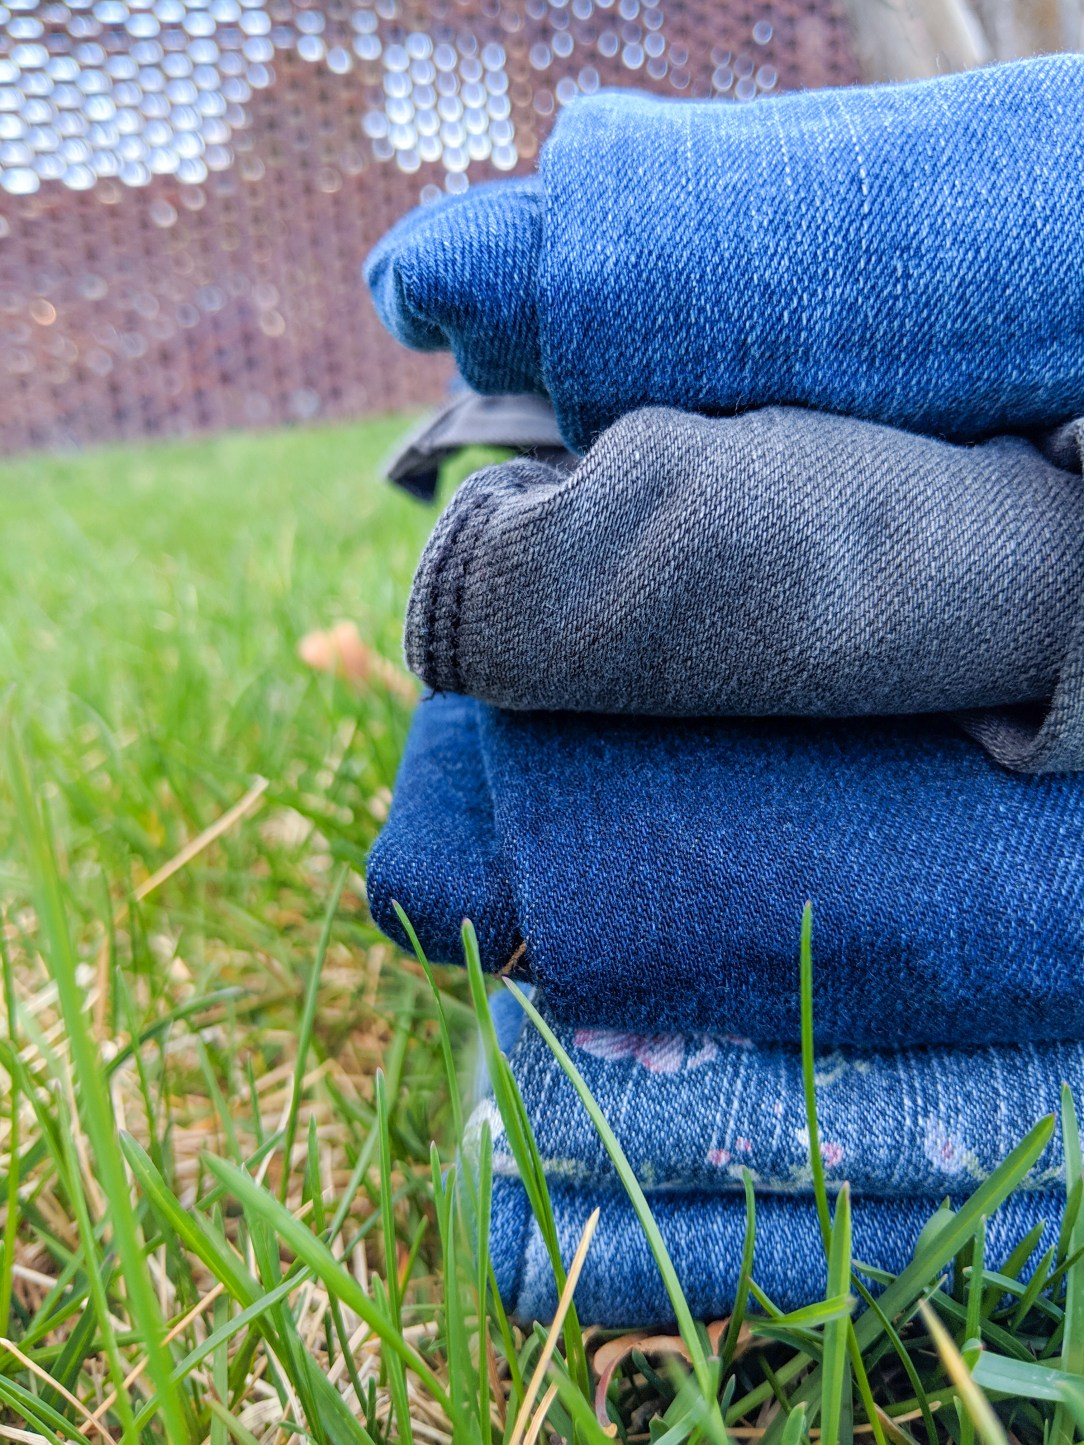 denim day, sexual assault awareness month